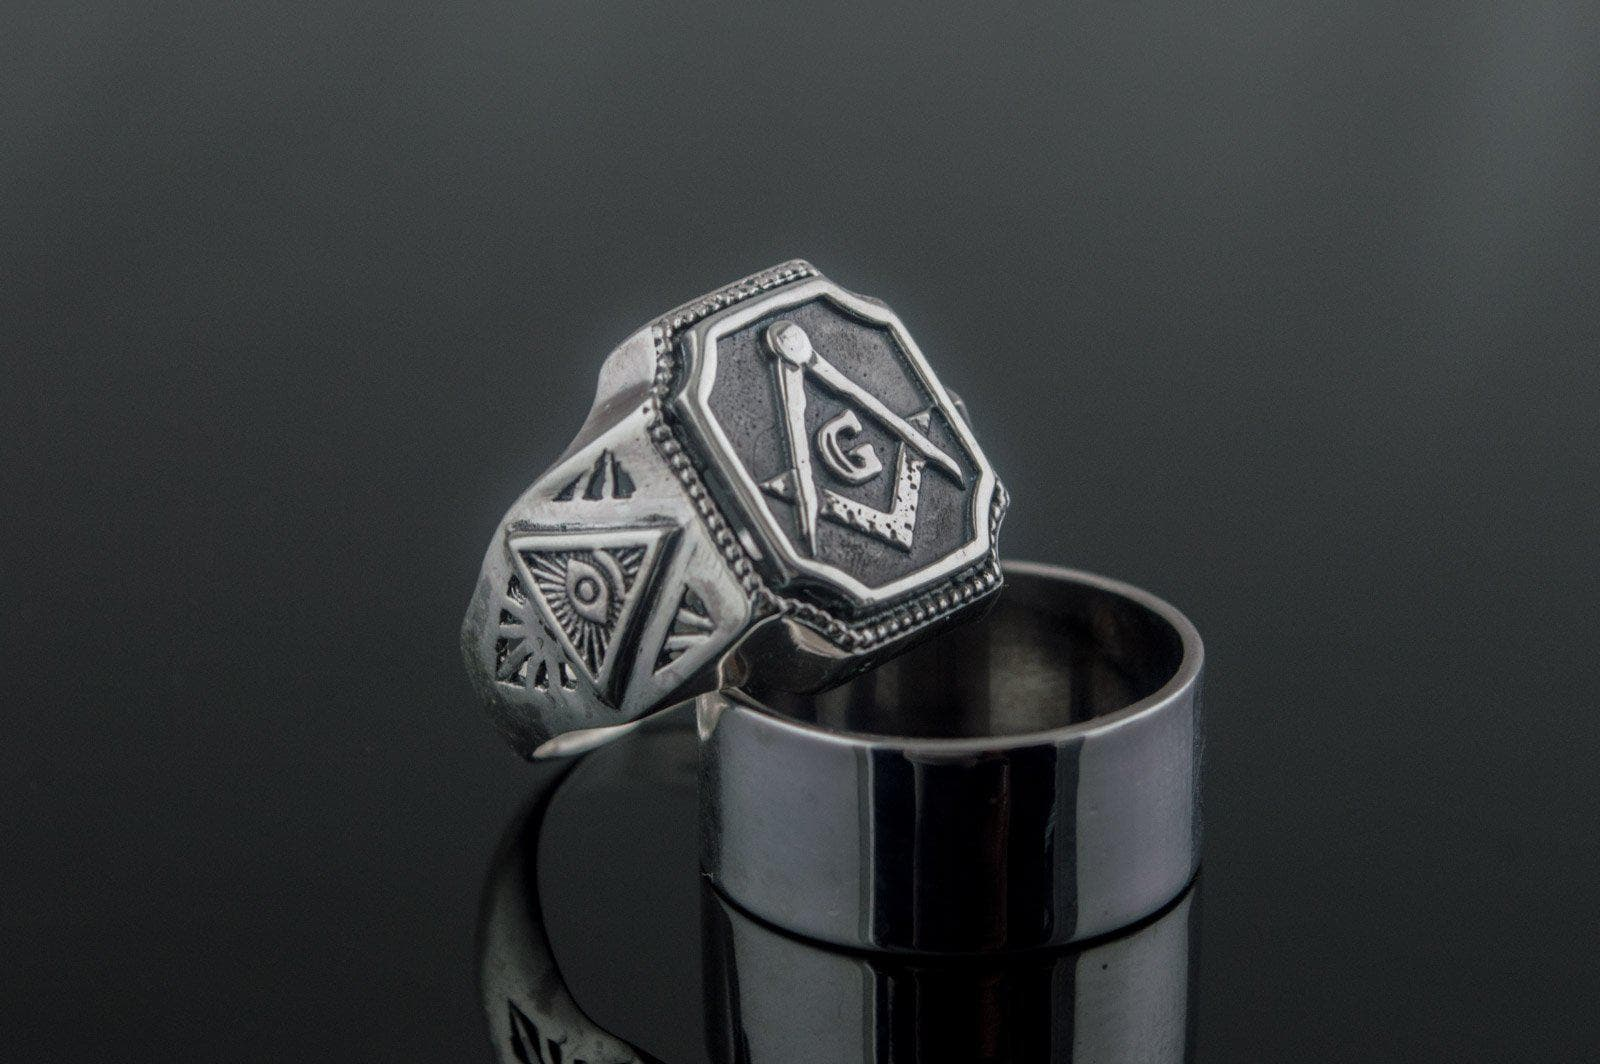 Rings Masonic Square Compass with Eye of Providence Sterling Silver Ring Ancient Treasures Ancientreasures Viking Odin Thor Mjolnir Celtic Ancient Egypt Norse Norse Mythology